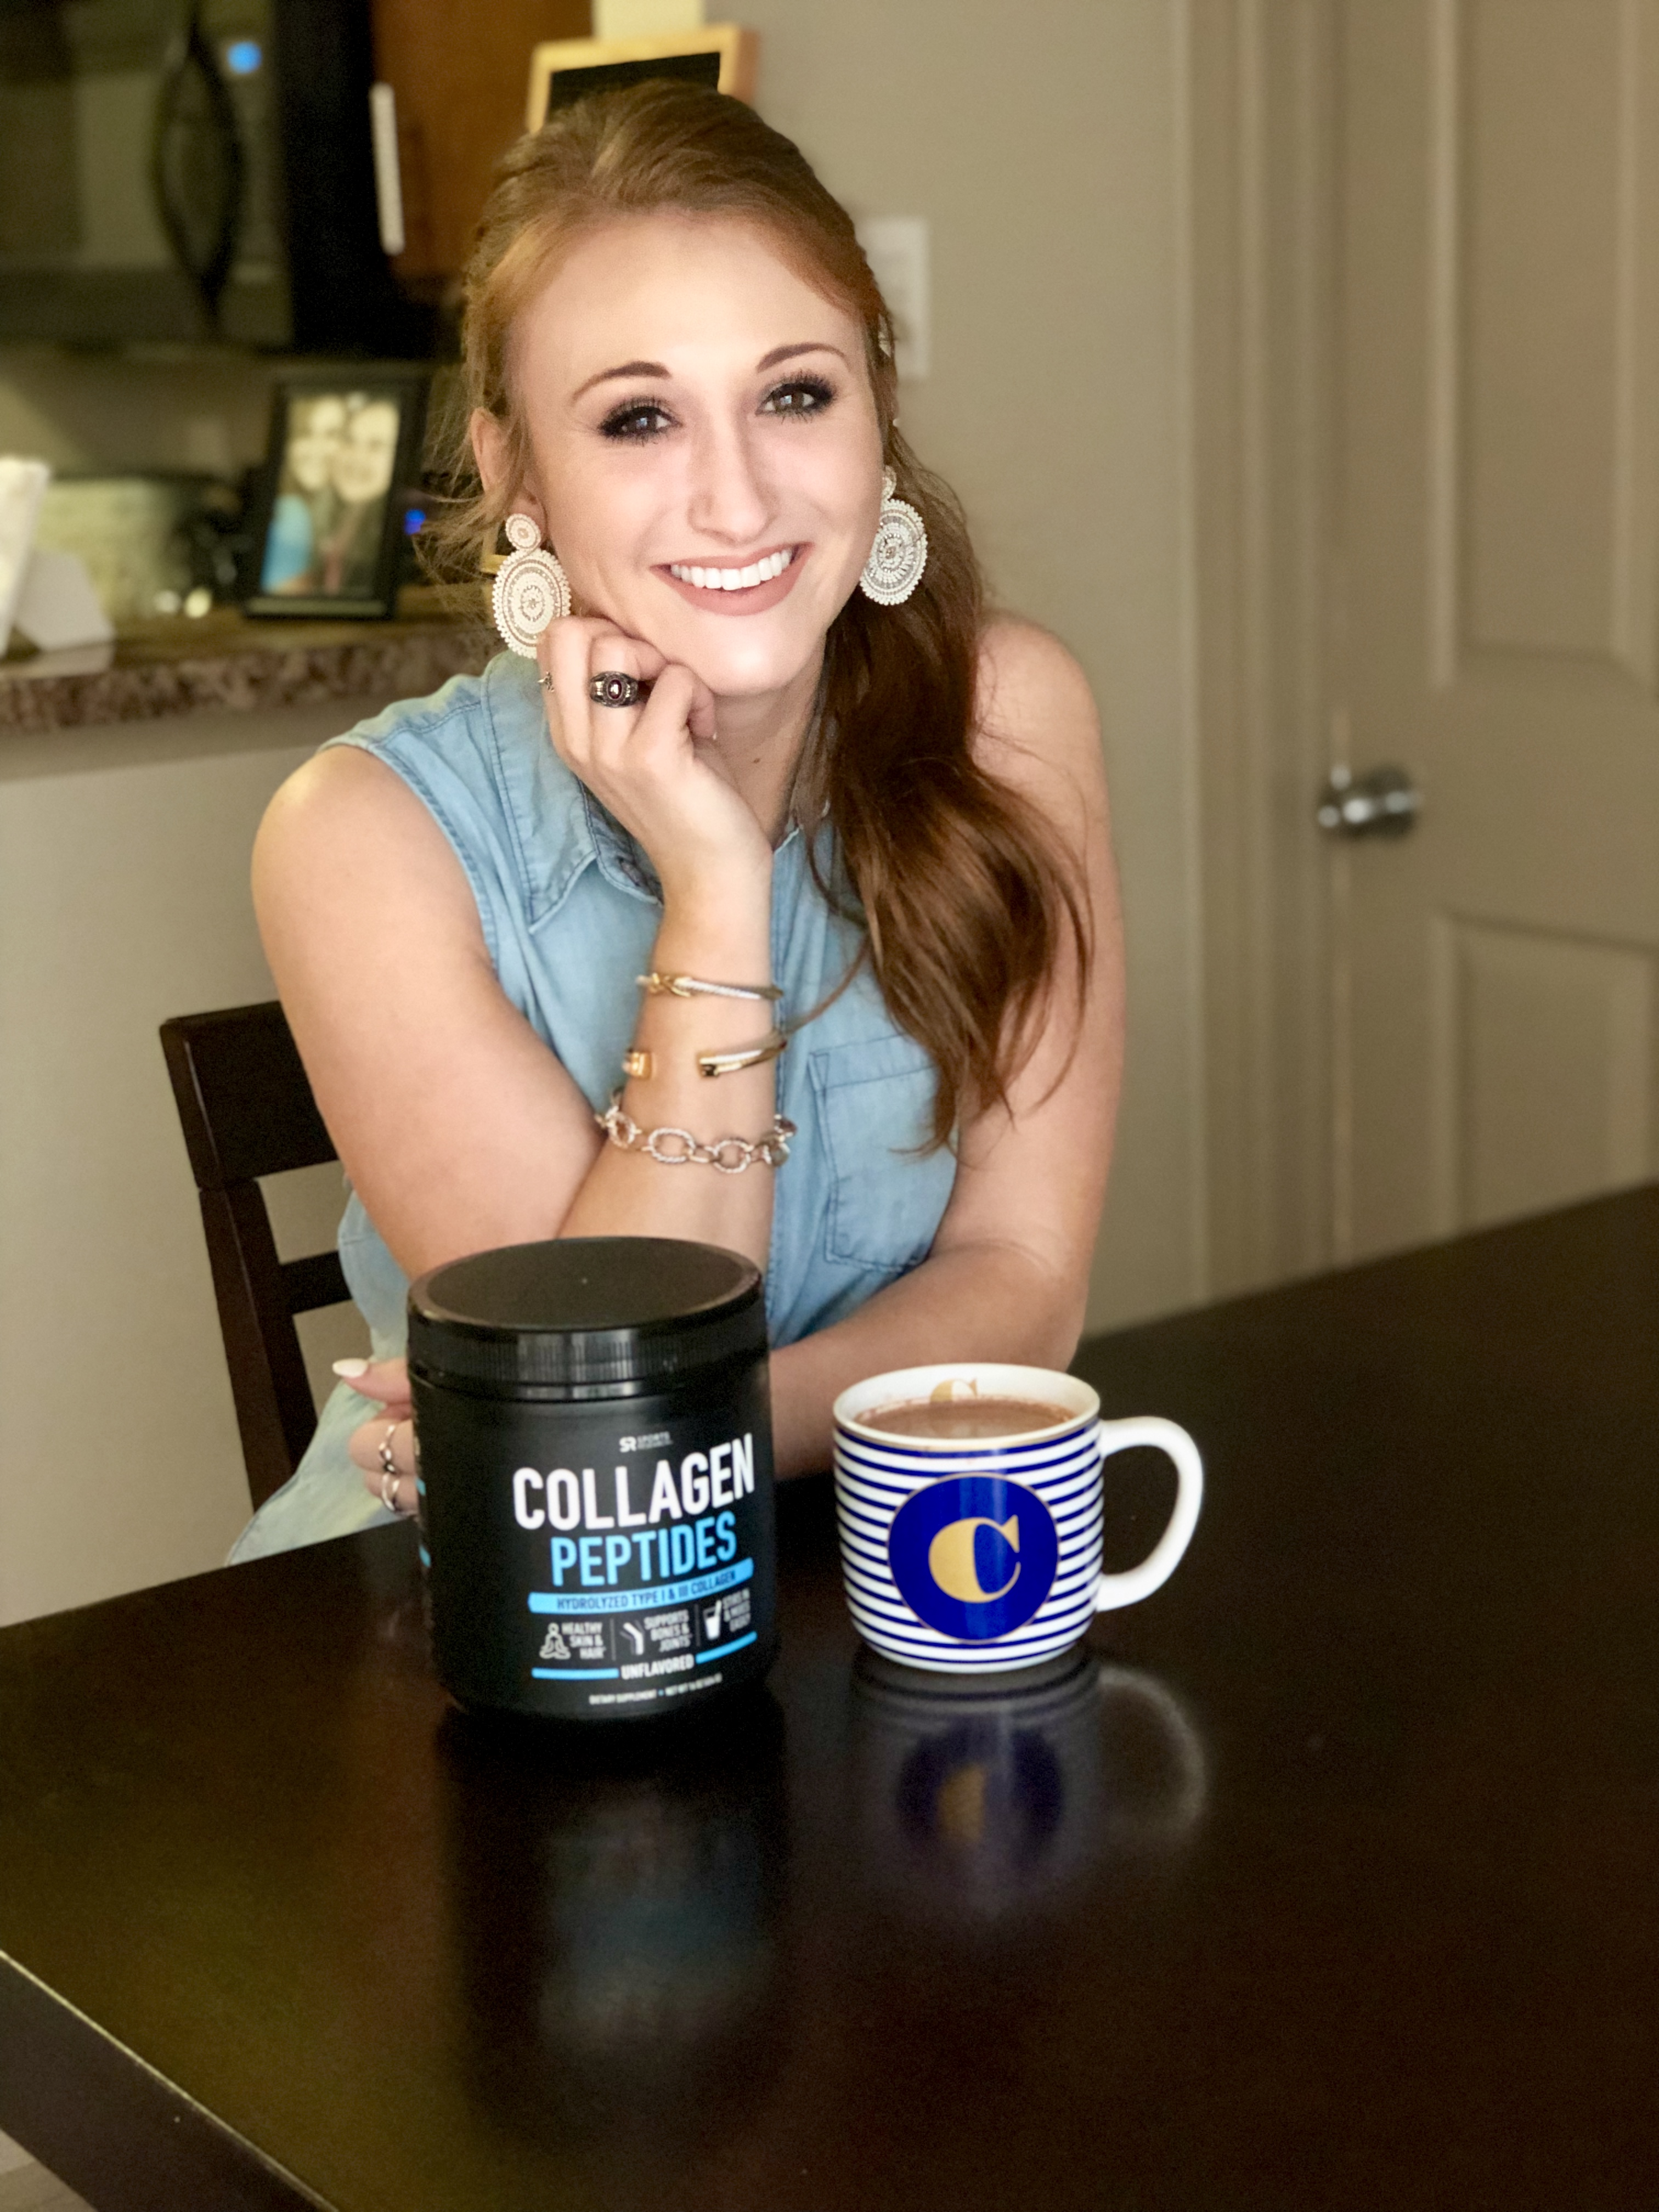 Collagen Peptides and Why I Take Them | Chaos and Coffee